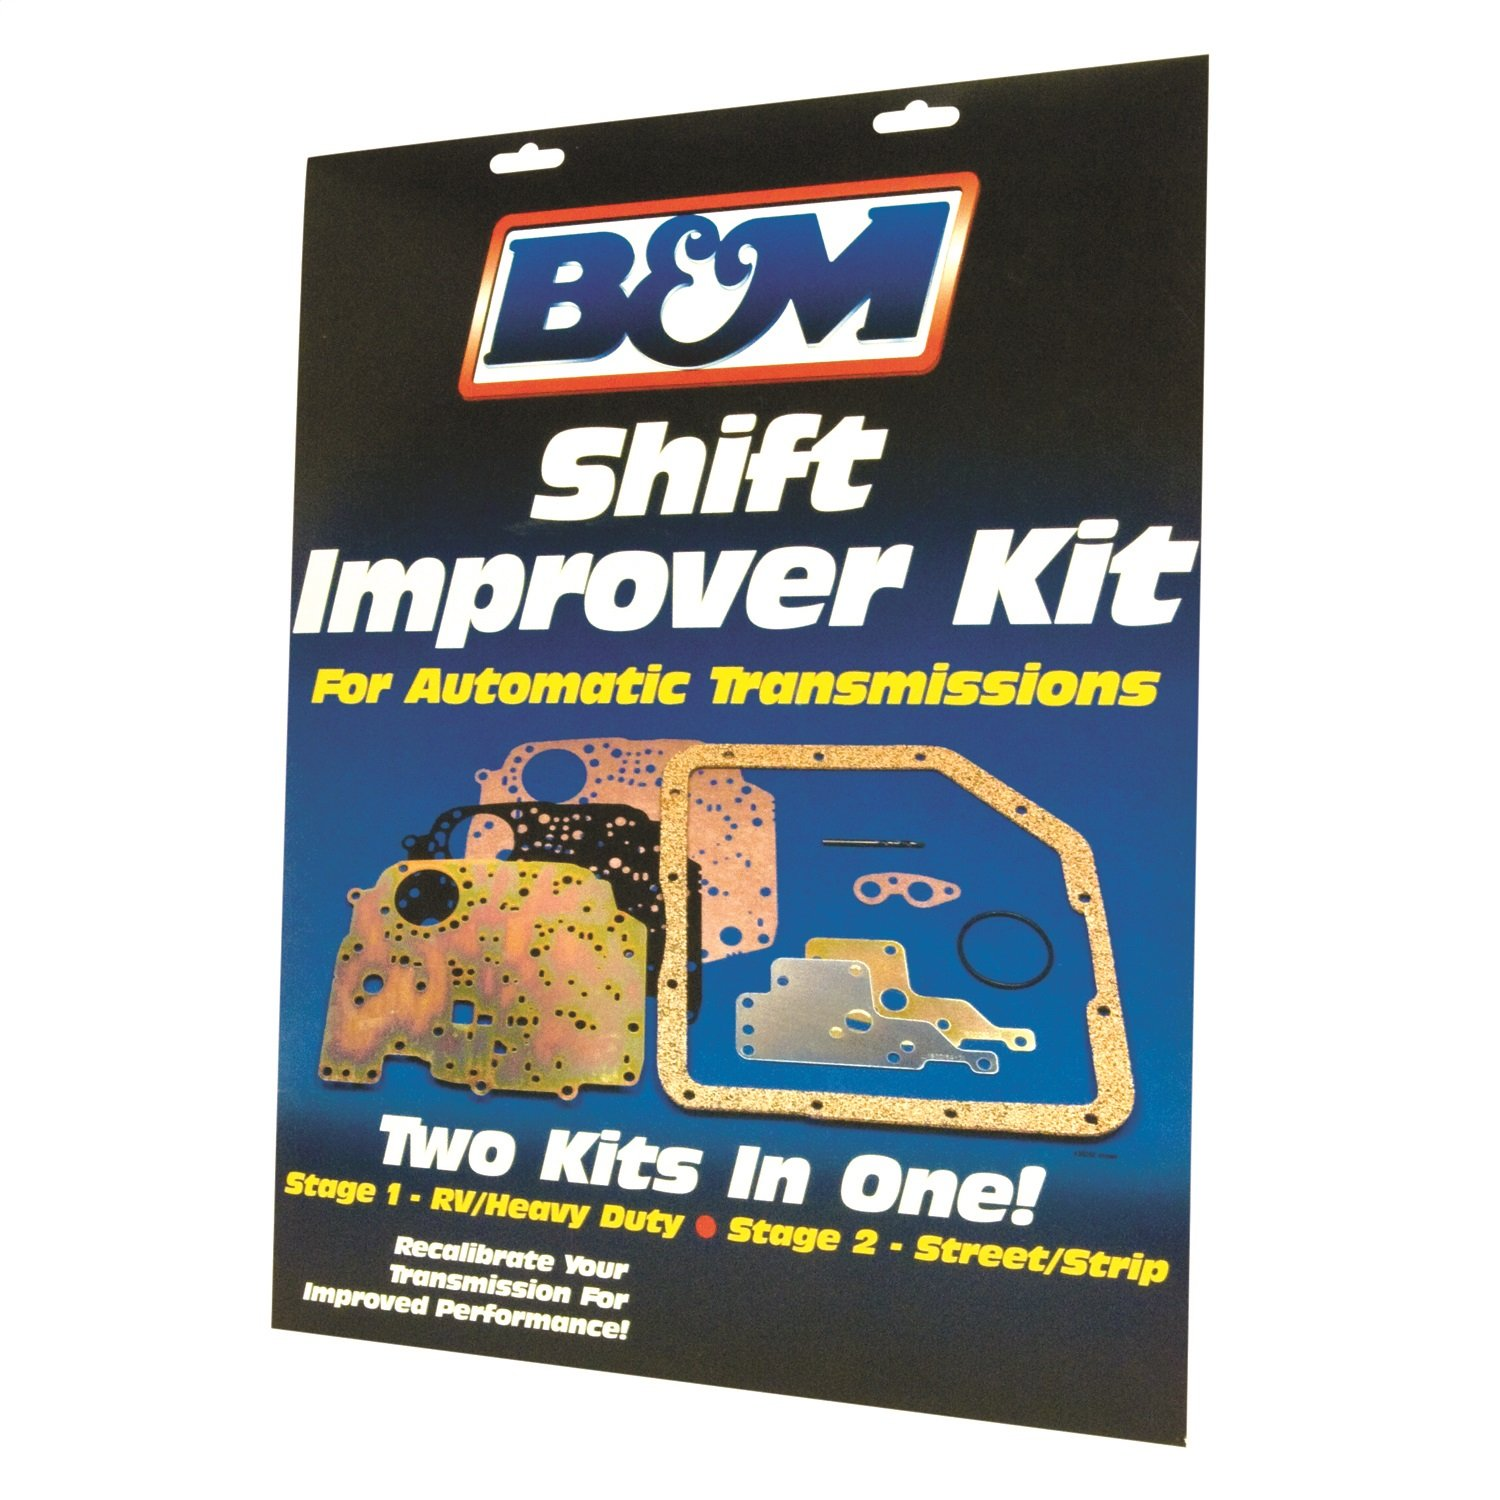 B&M 40262 Shift Improver Kit for Automatic Transmissions